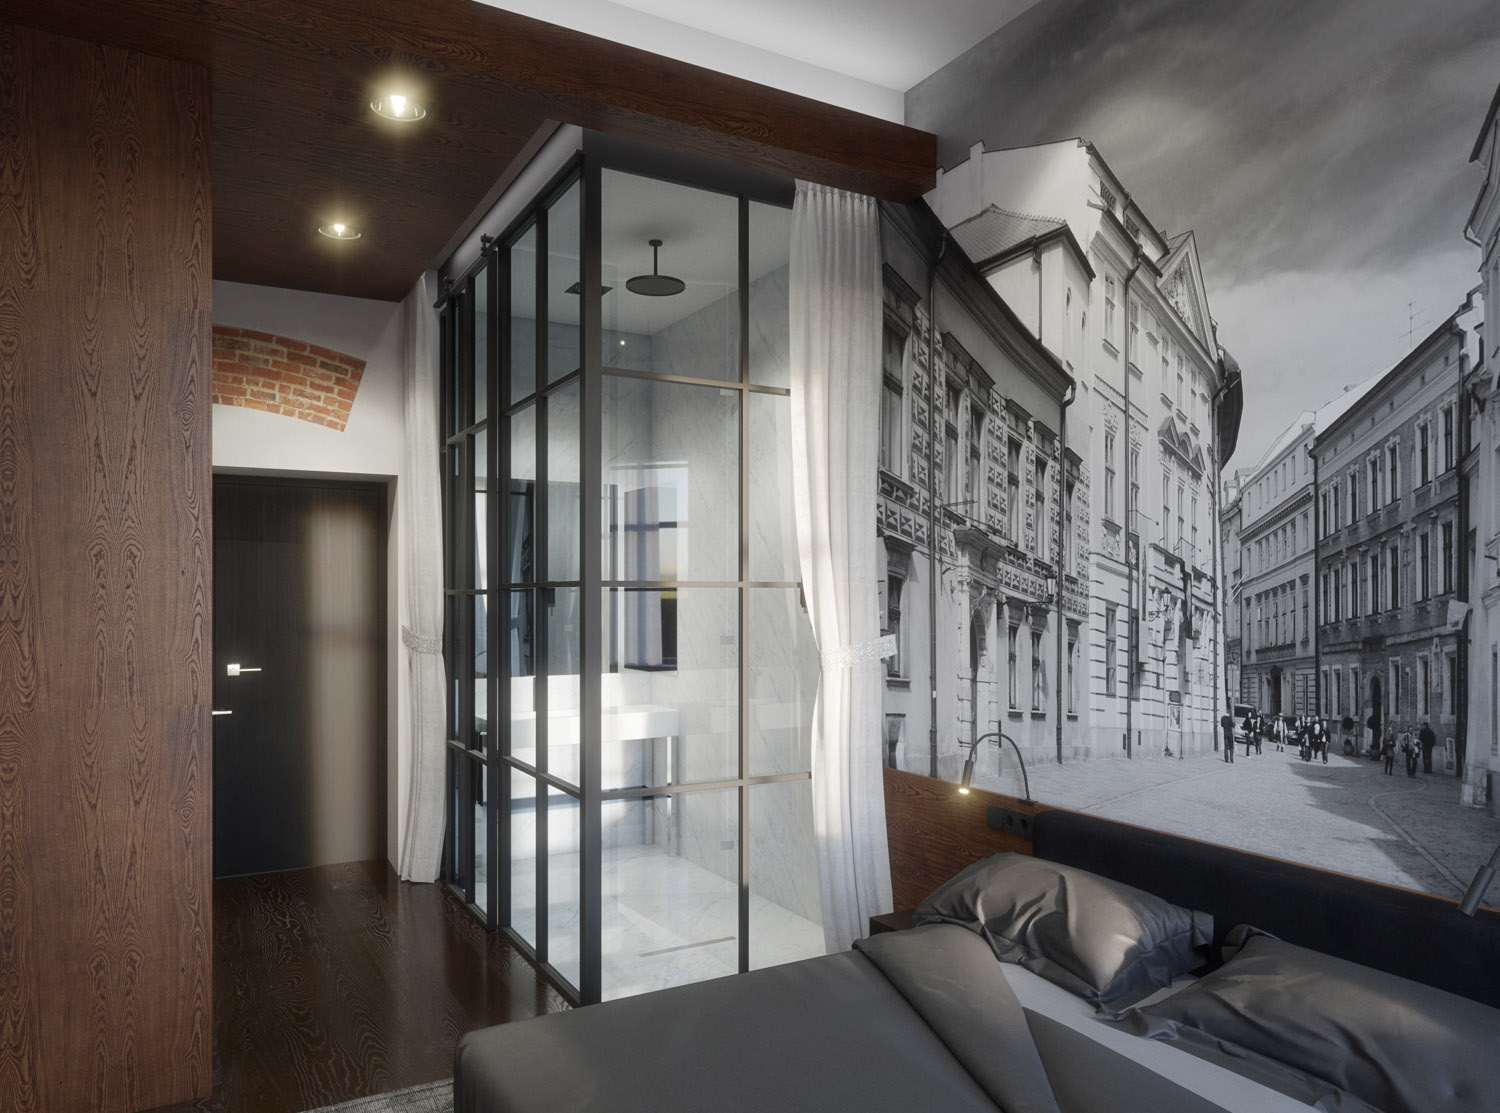 Hotel room in black and white - 3D visualization